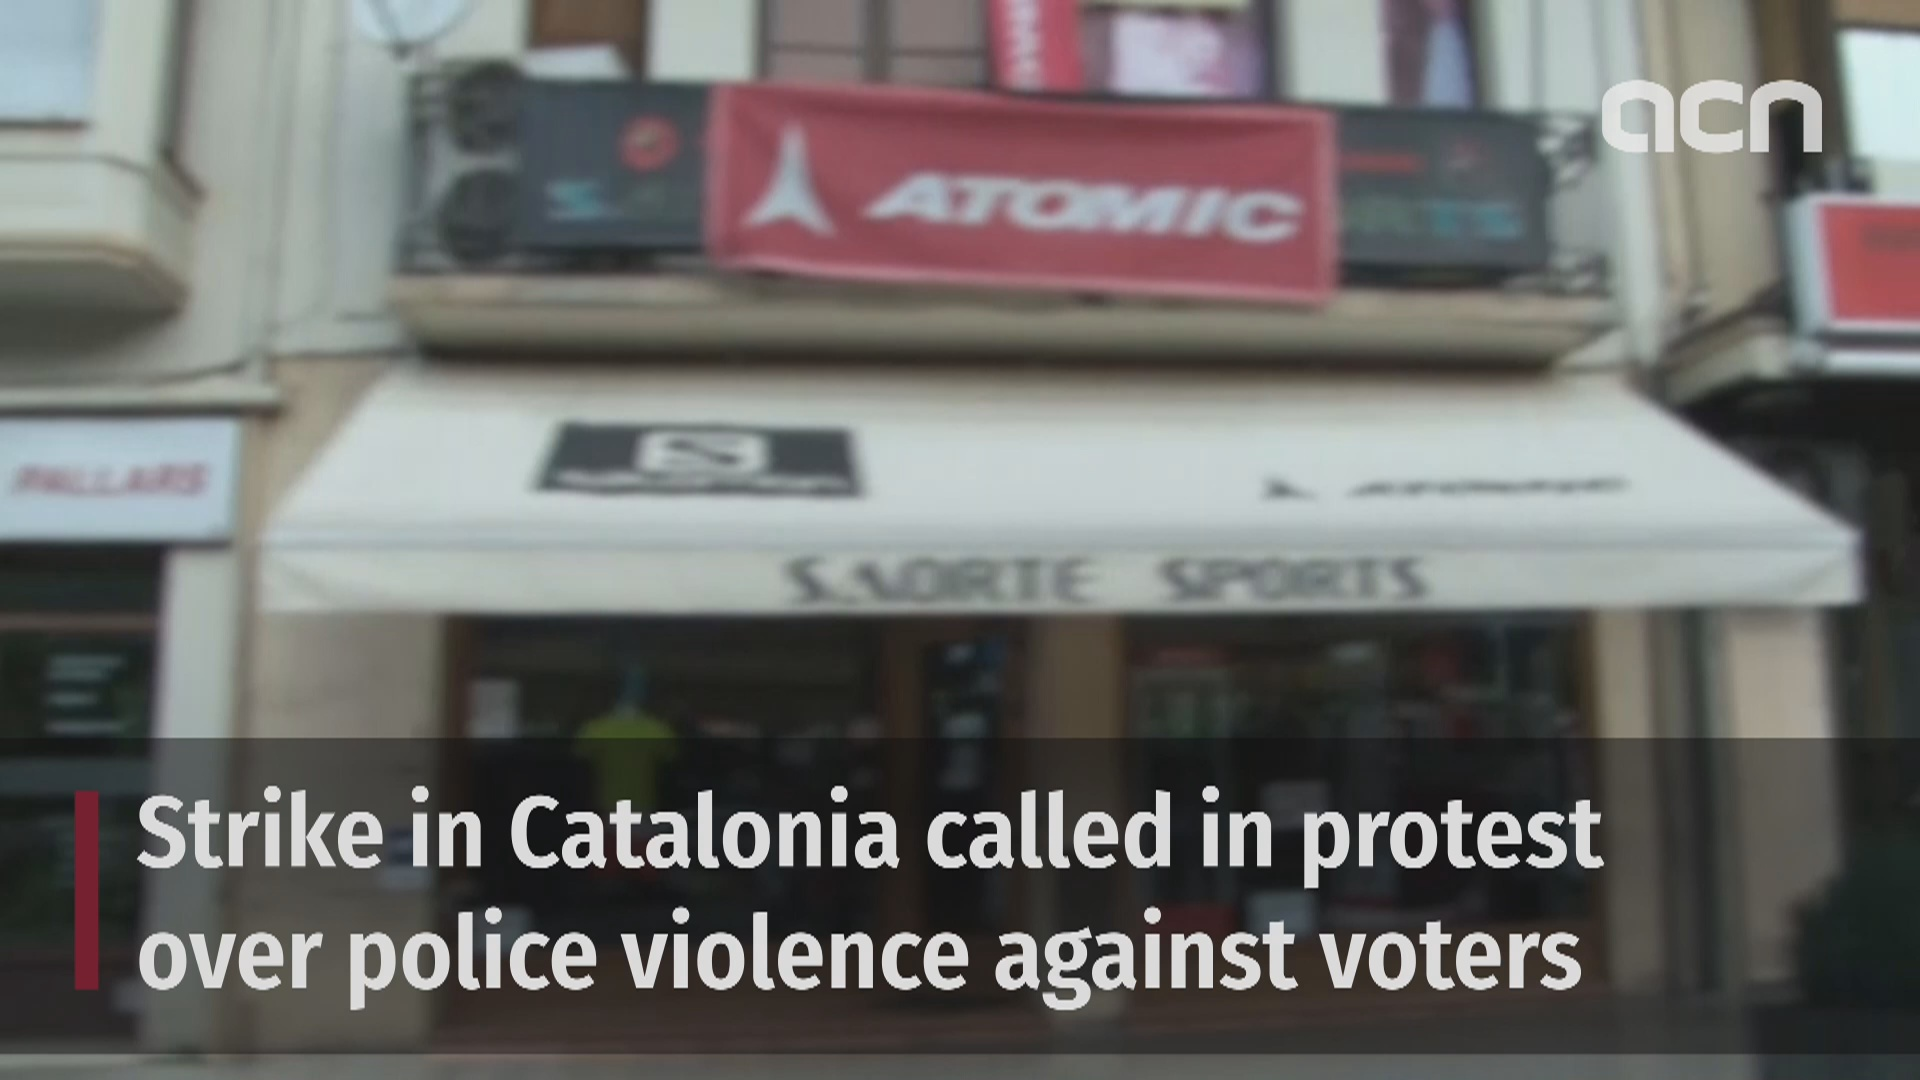 Catalonia on strike in protest against Spain's police violence